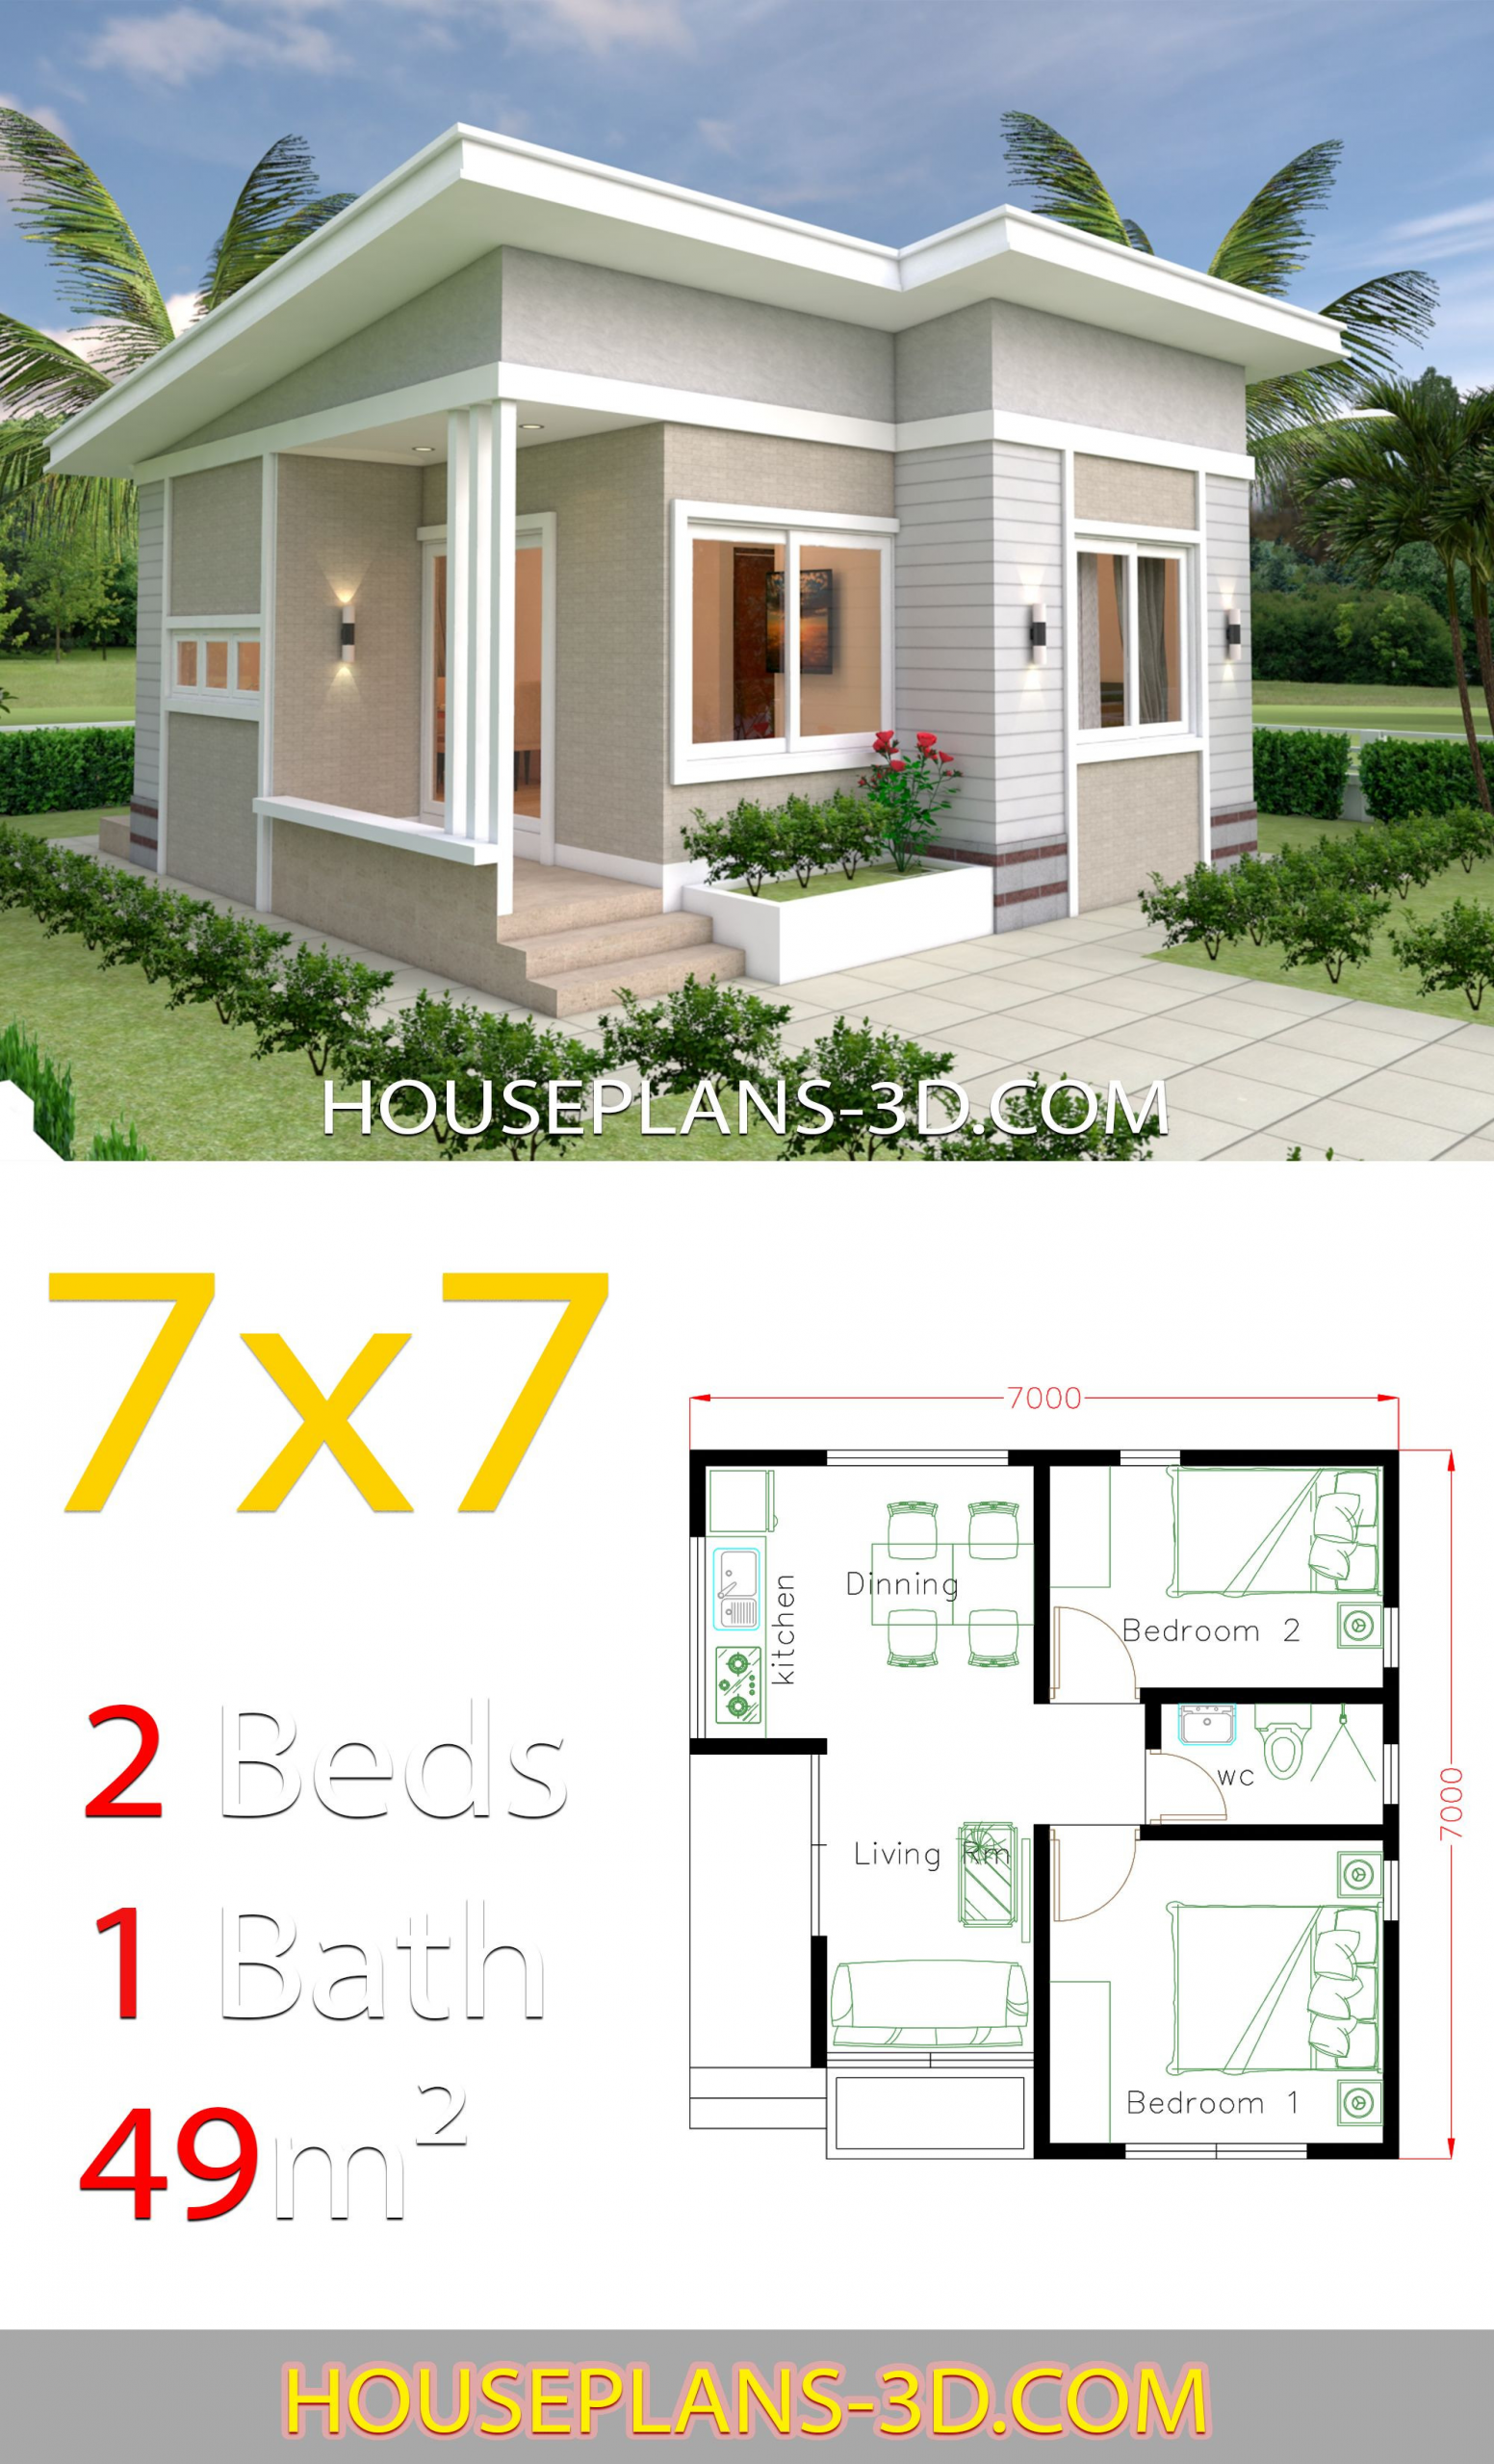 Elegant Tiny 2 Bedroom House Plans Small House Design Plans 7x7 With 2 Bedrooms In 2020 Small House Design Plans Small House Layout House Design Pictures